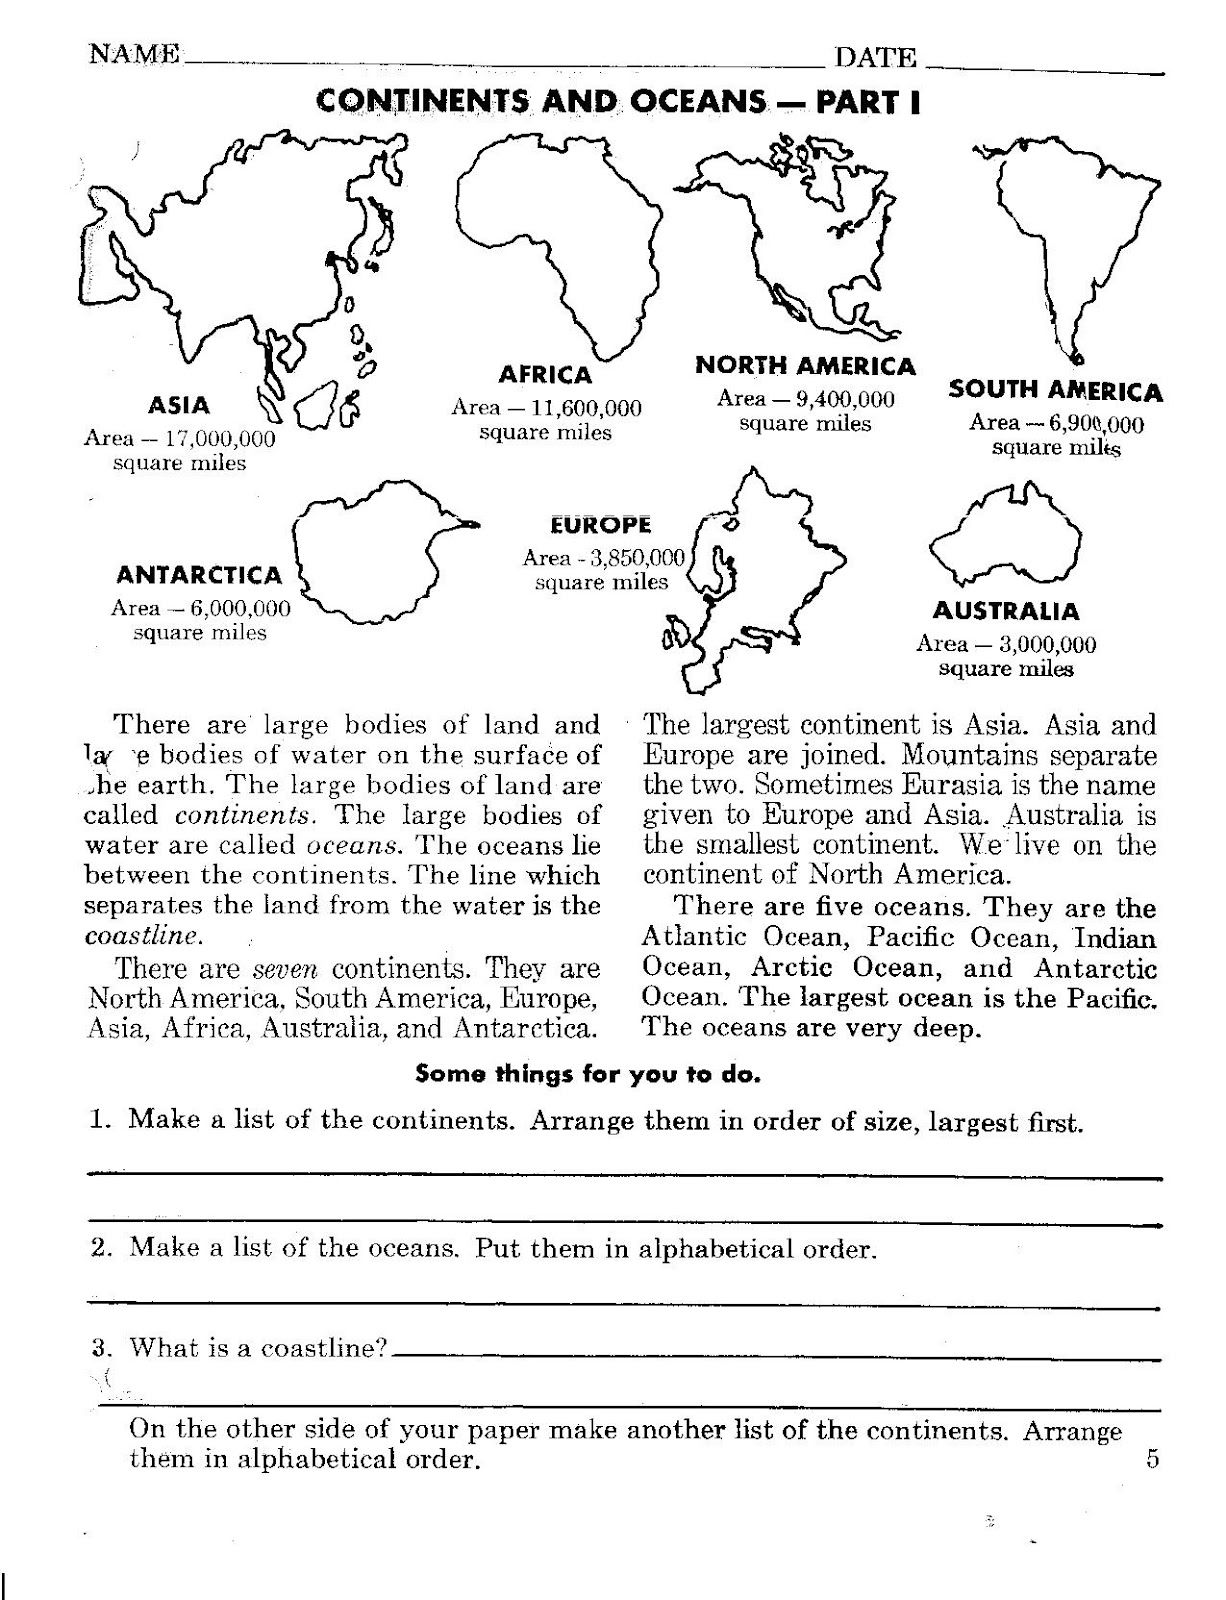 Continents and Oceans Worksheets   Continents and oceans [ 1600 x 1226 Pixel ]